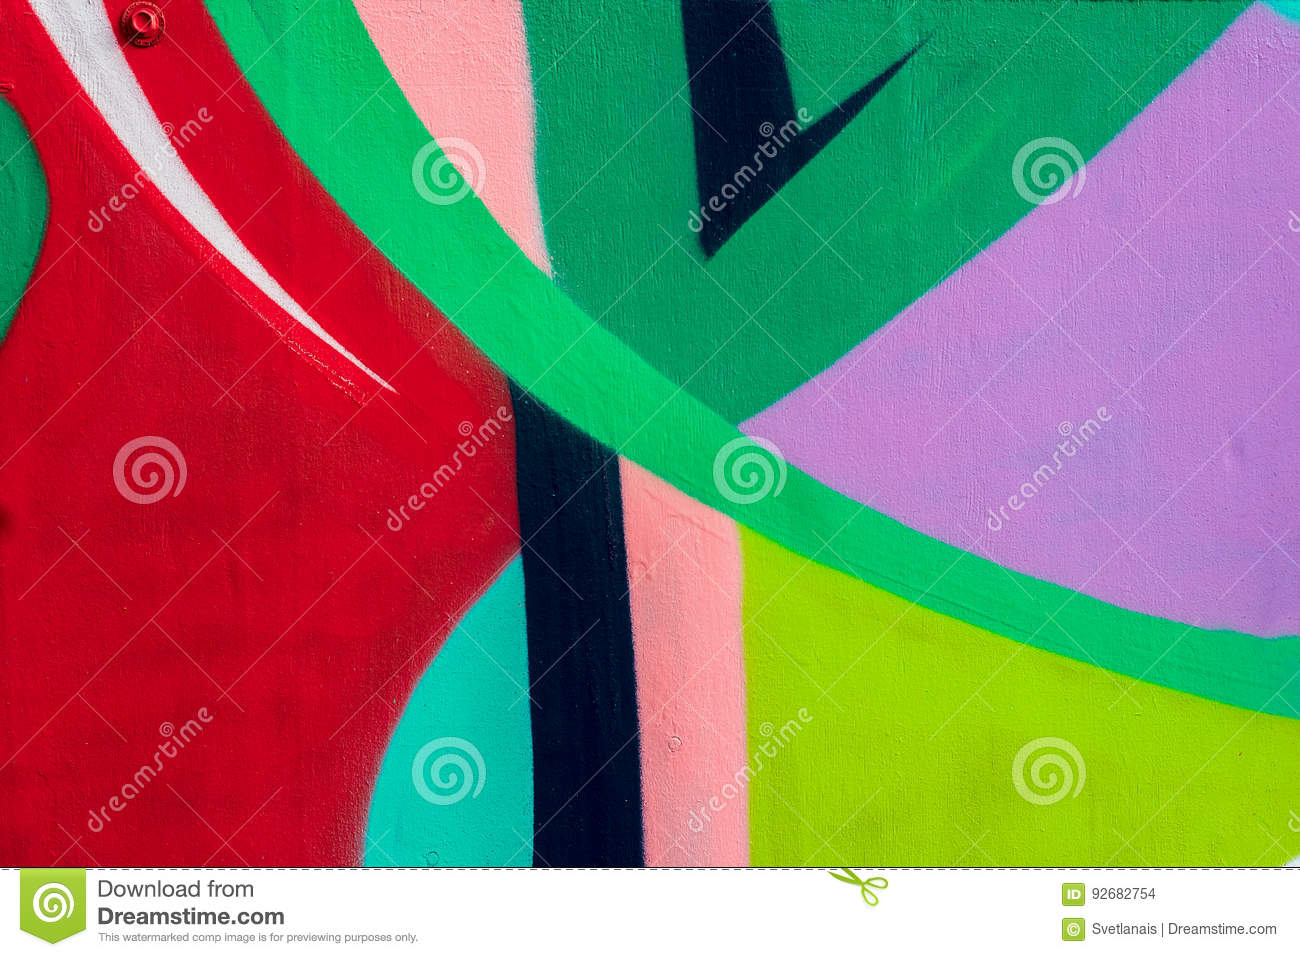 Bright fragment of wall with detail of graffiti, street art. Abstract creative drawing fashion colors. Modern iconic